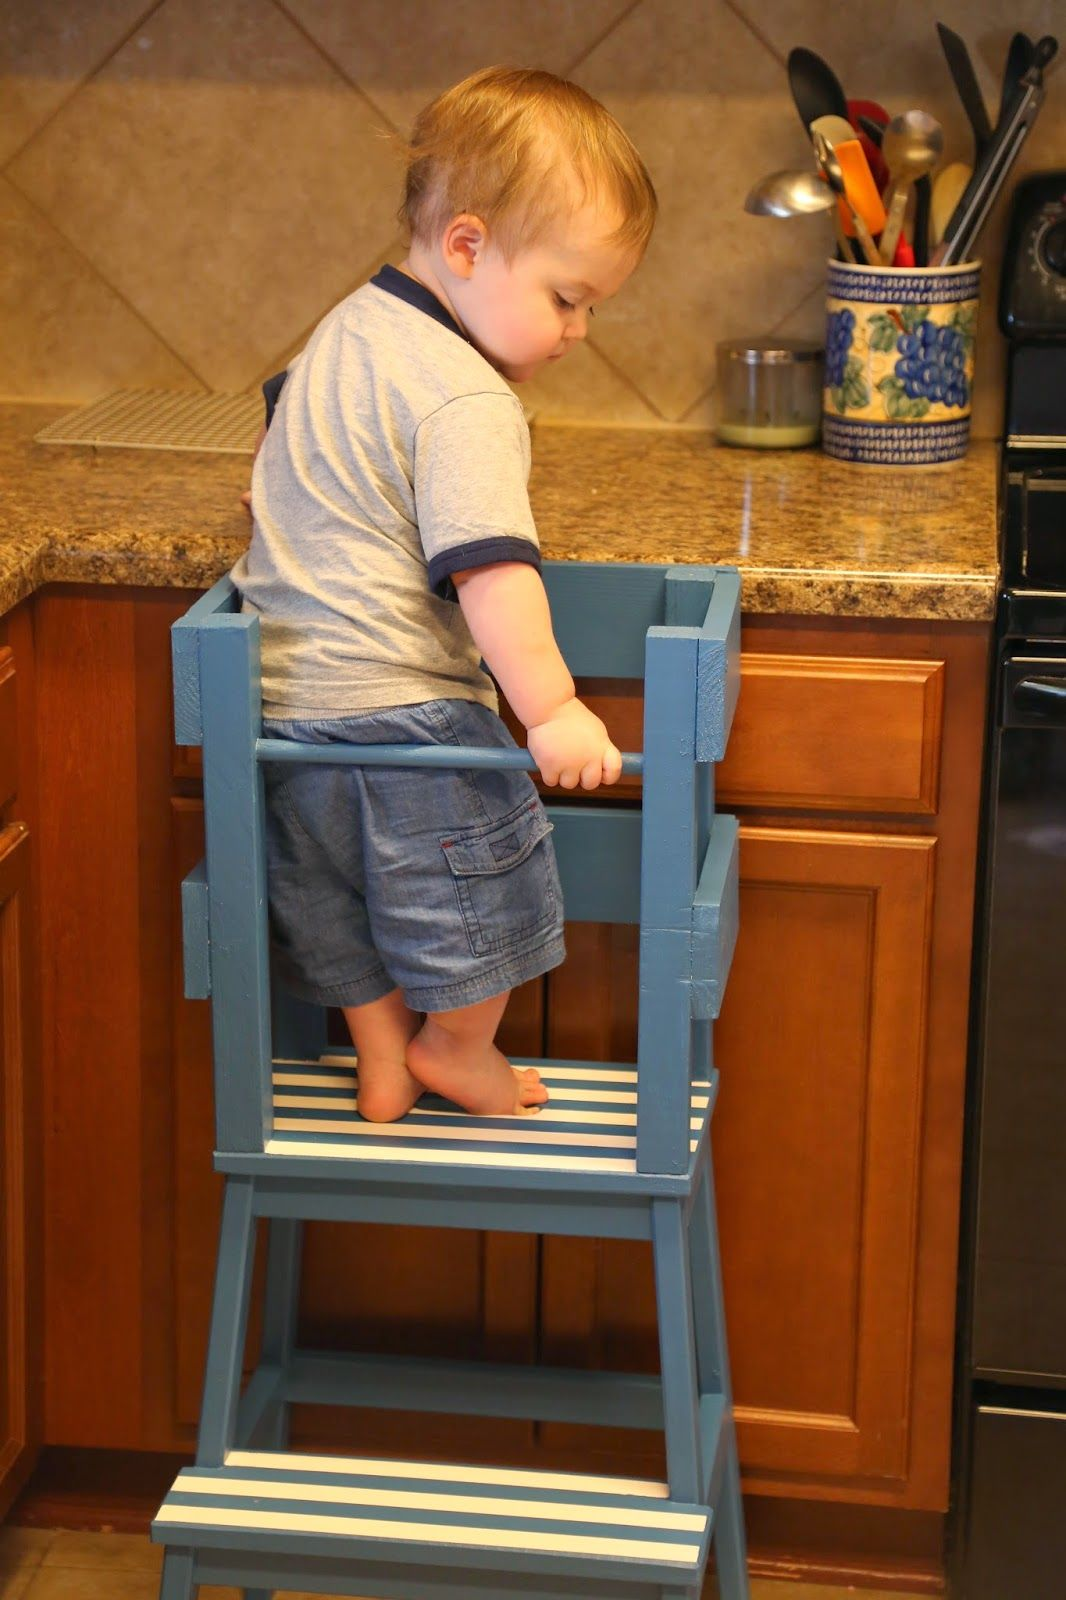 Diy Step Stool With Rails Easy And Affordable